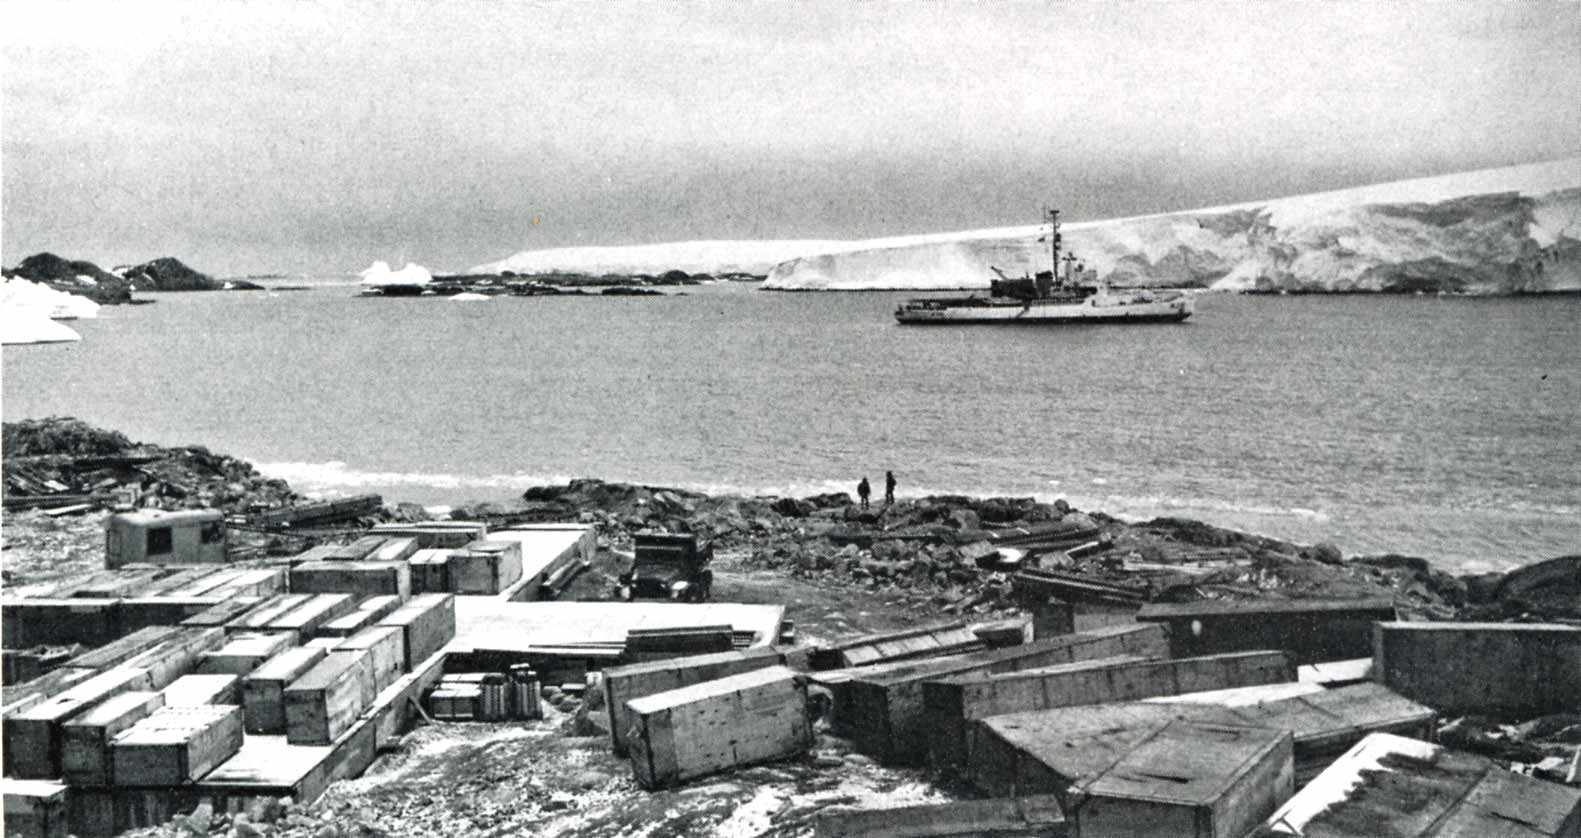 The Coast Guard Cutter Westwind at anchor in Arthur Harbor in winter 1967, after arriving on January 8 with a team of Navy Seabees. After transferring the team and several tons of gear ashore, the Westwind stayed on station as construction began on Palmer Station. Photo from the Palmer Station history pages at palmerstation.com.